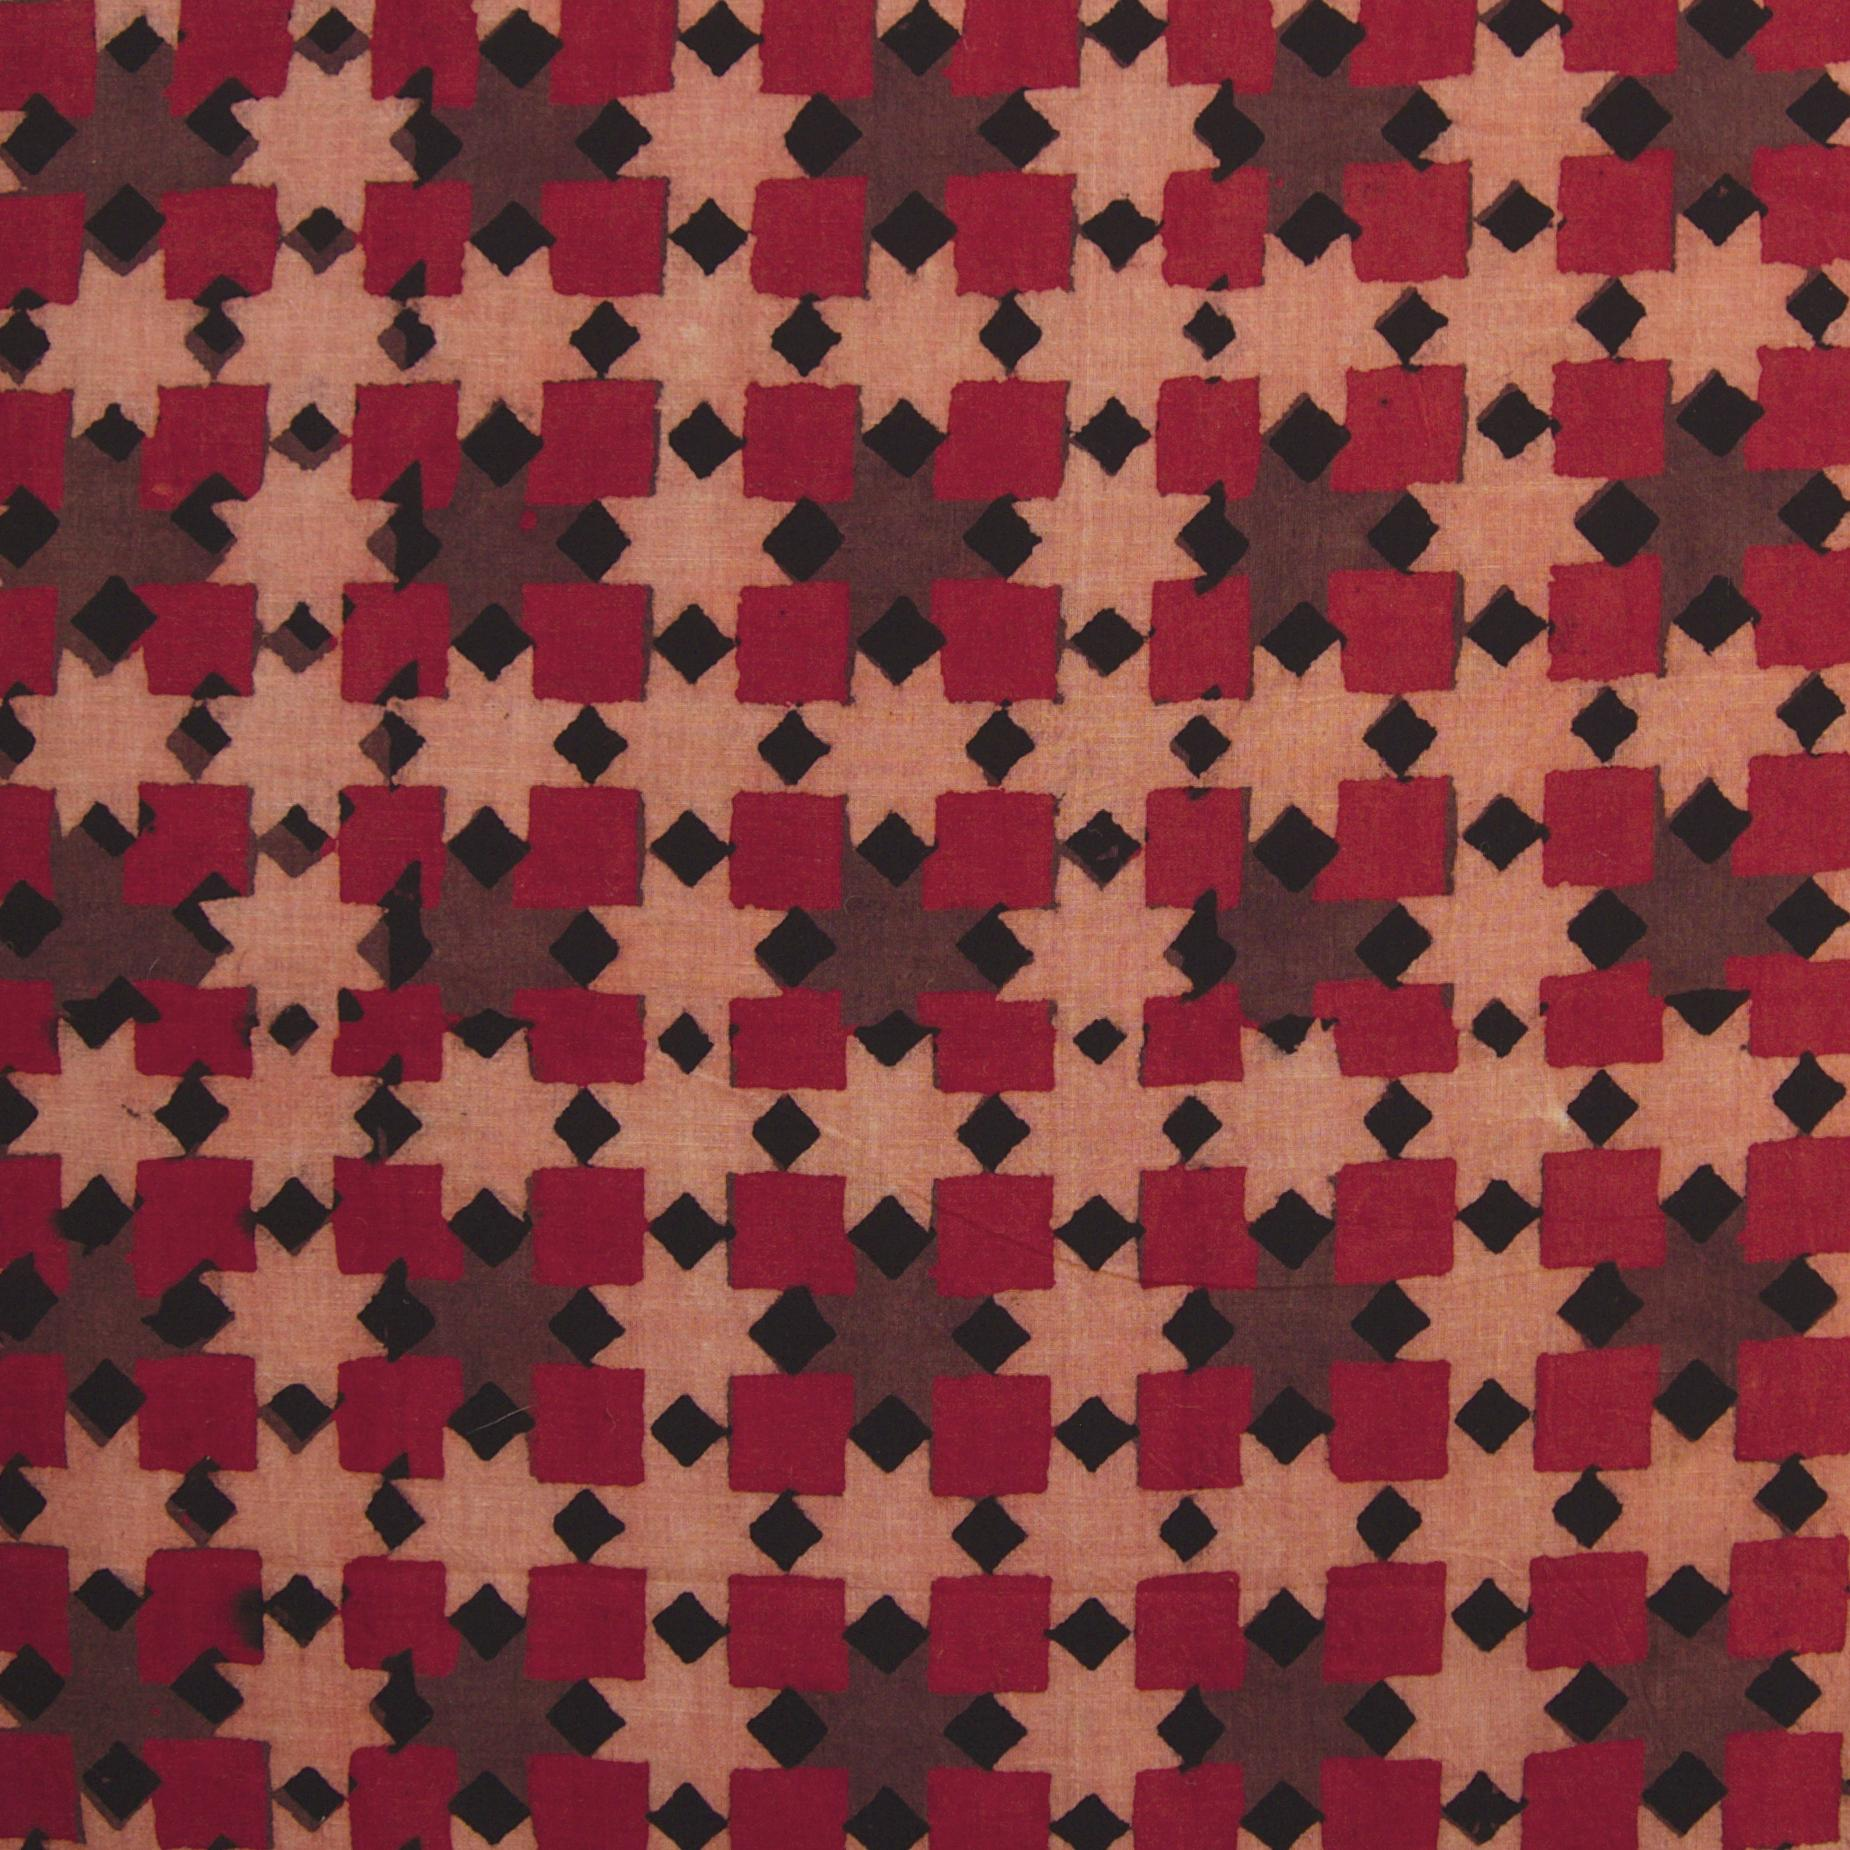 Block Printed Fabric, 100% Cotton, Ajrak Design: Pink Base, Black, Madder Root Red, Purple Square. Close Up